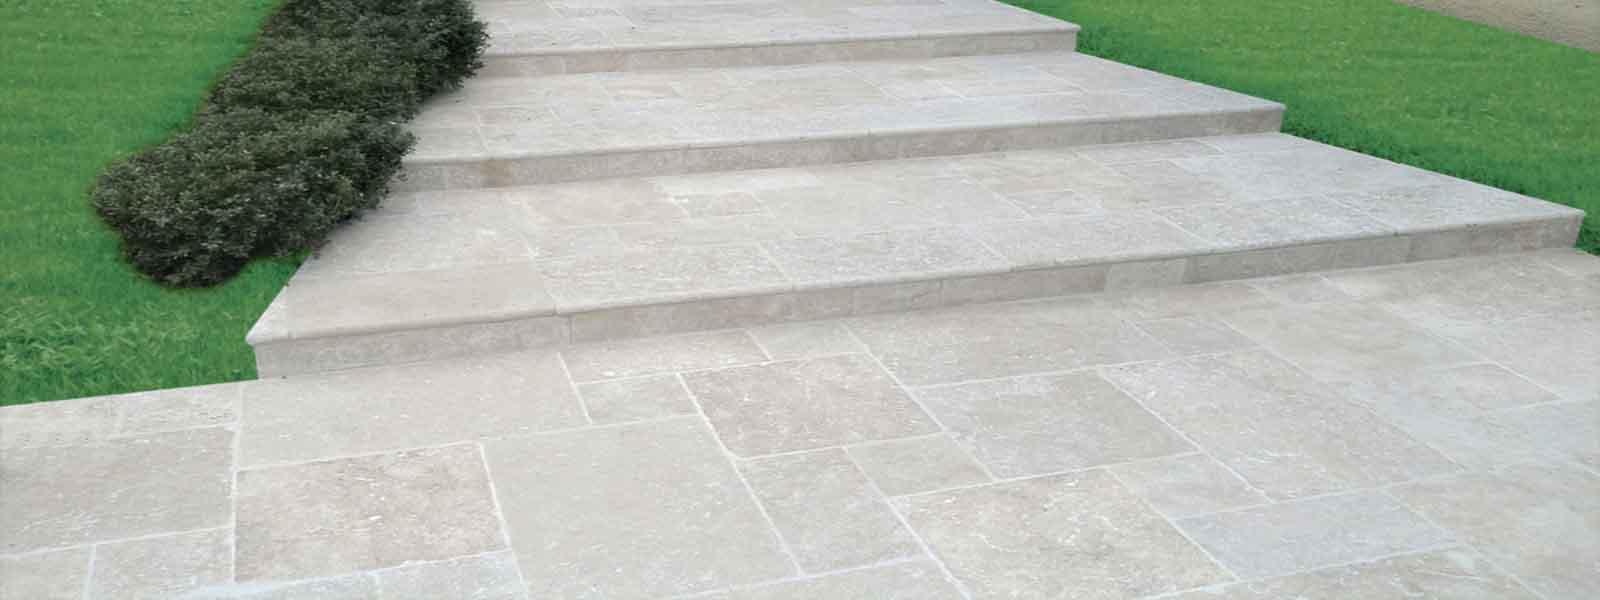 Carrelage ext rieur travertin en pierre naturelle pour for Carrelage exterieur travertin